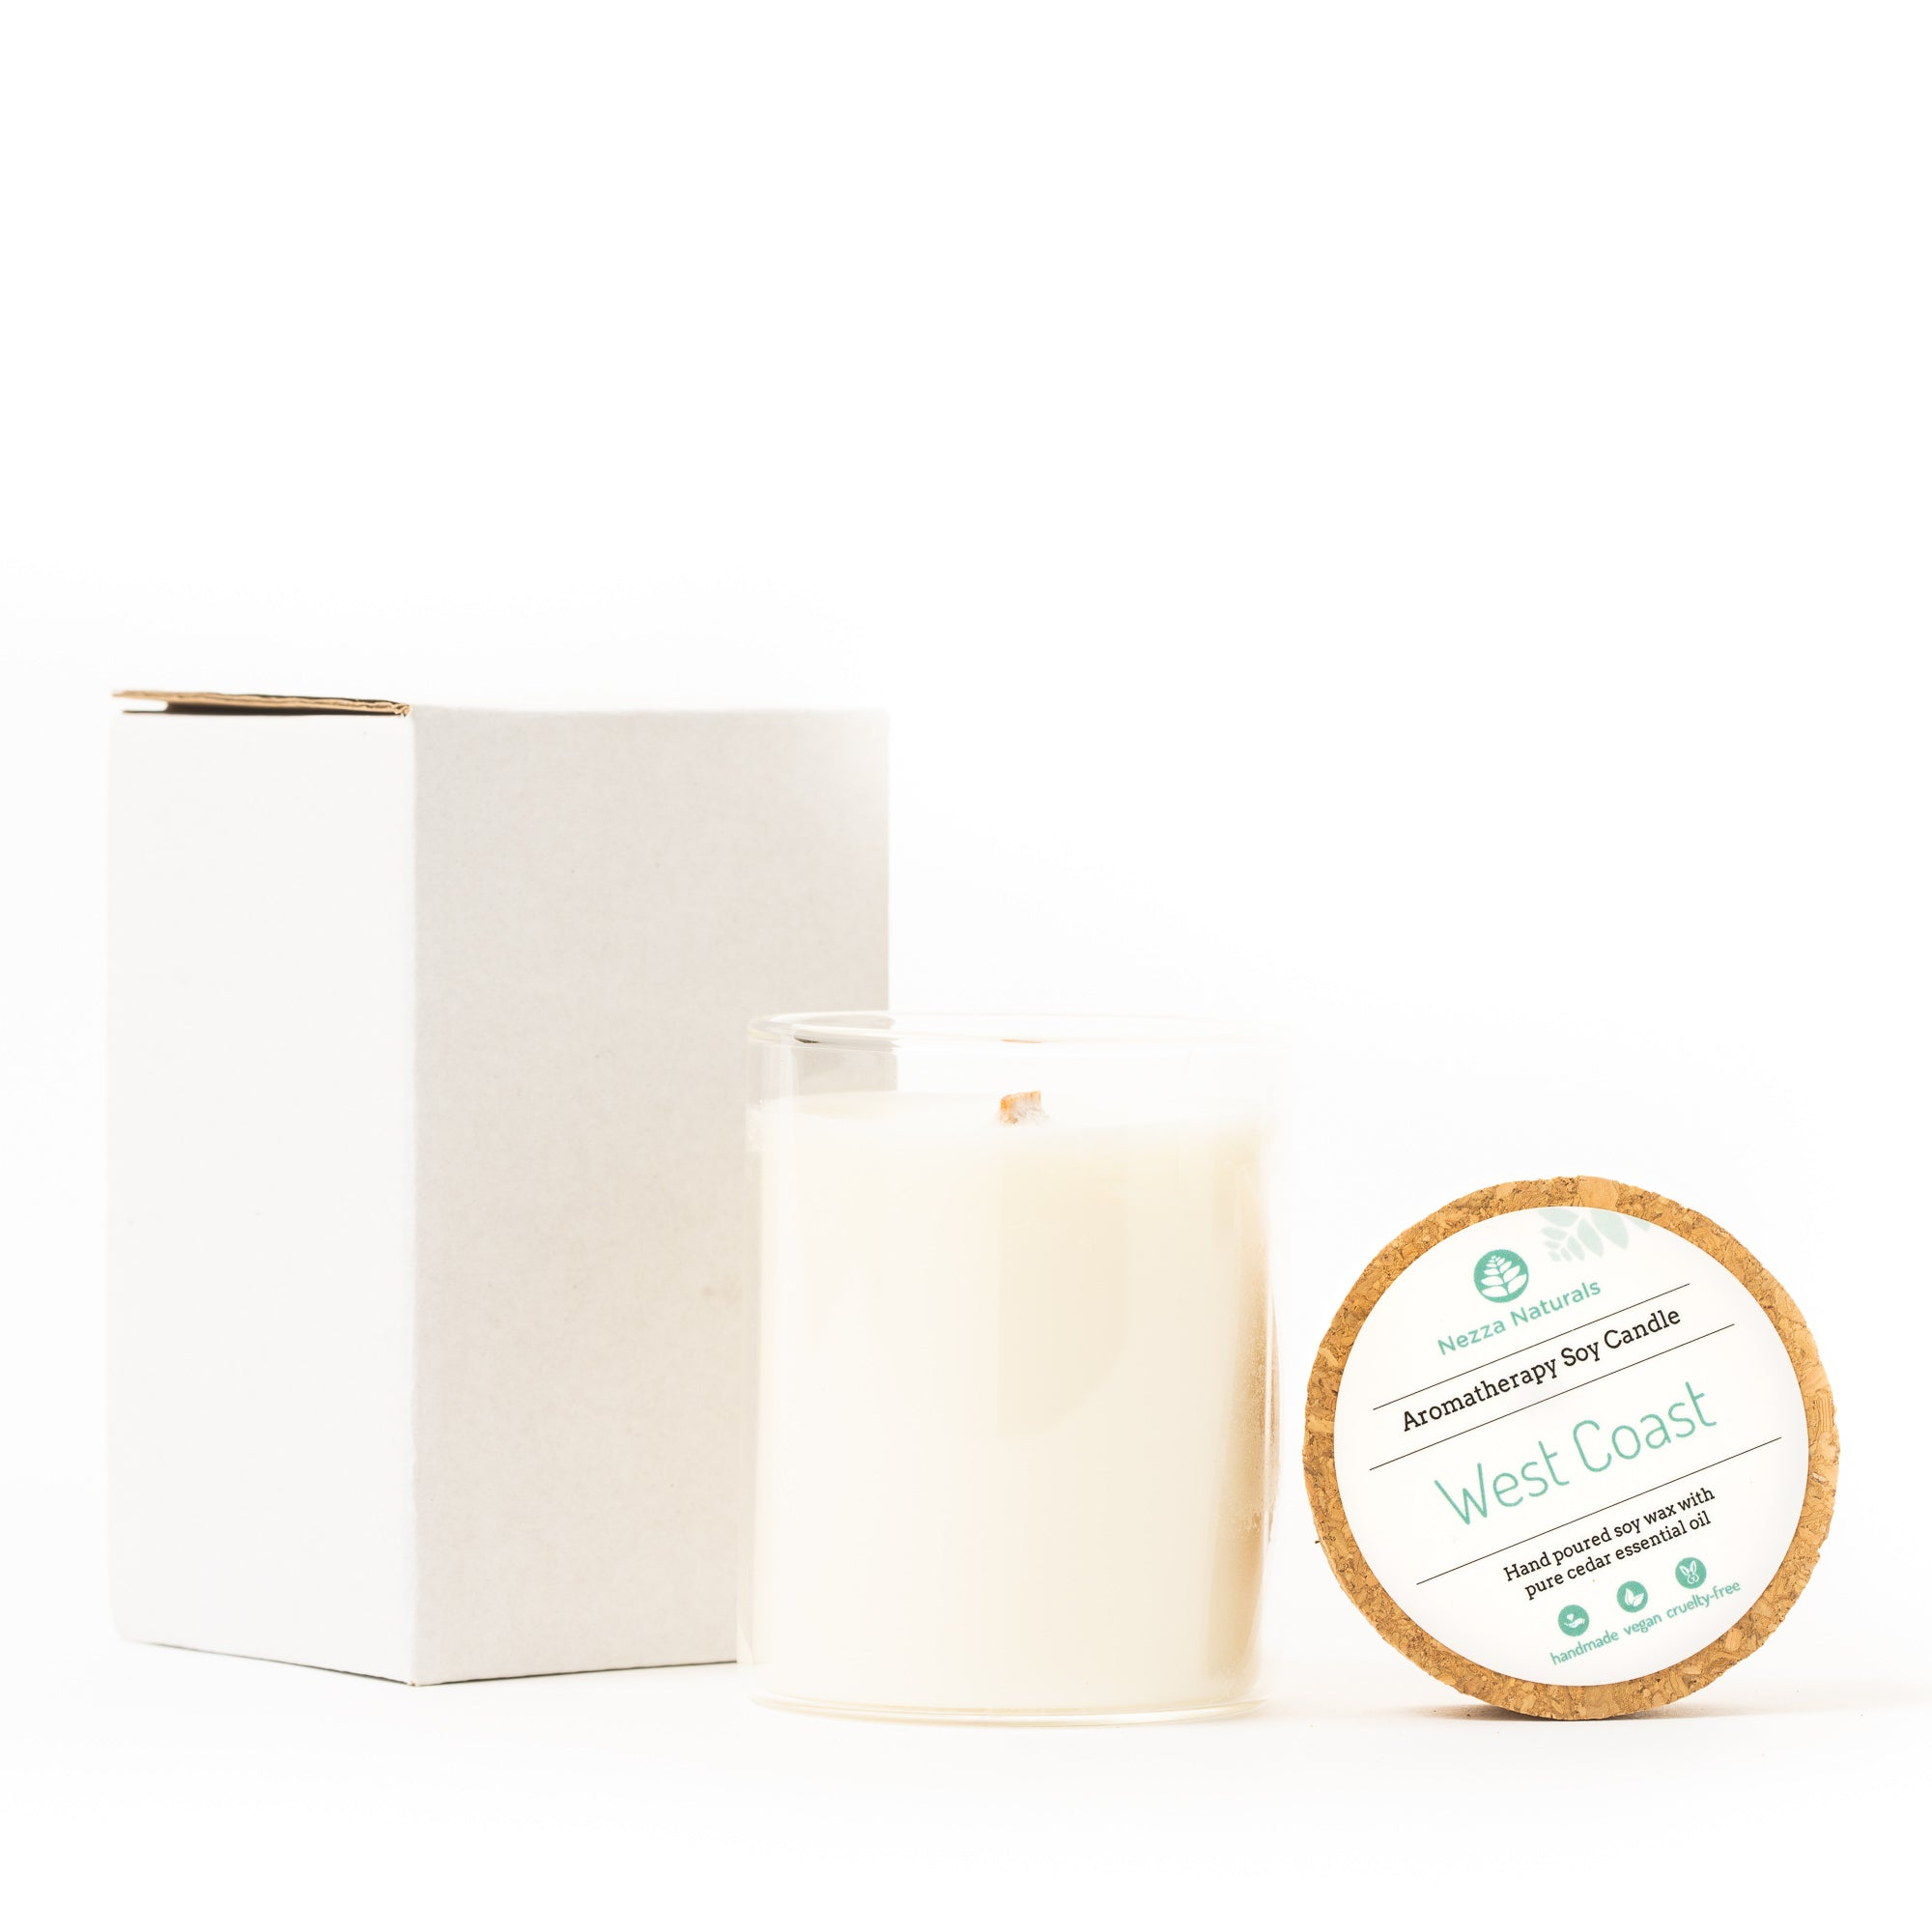 Aromatherapy Soy Candle in West Coast